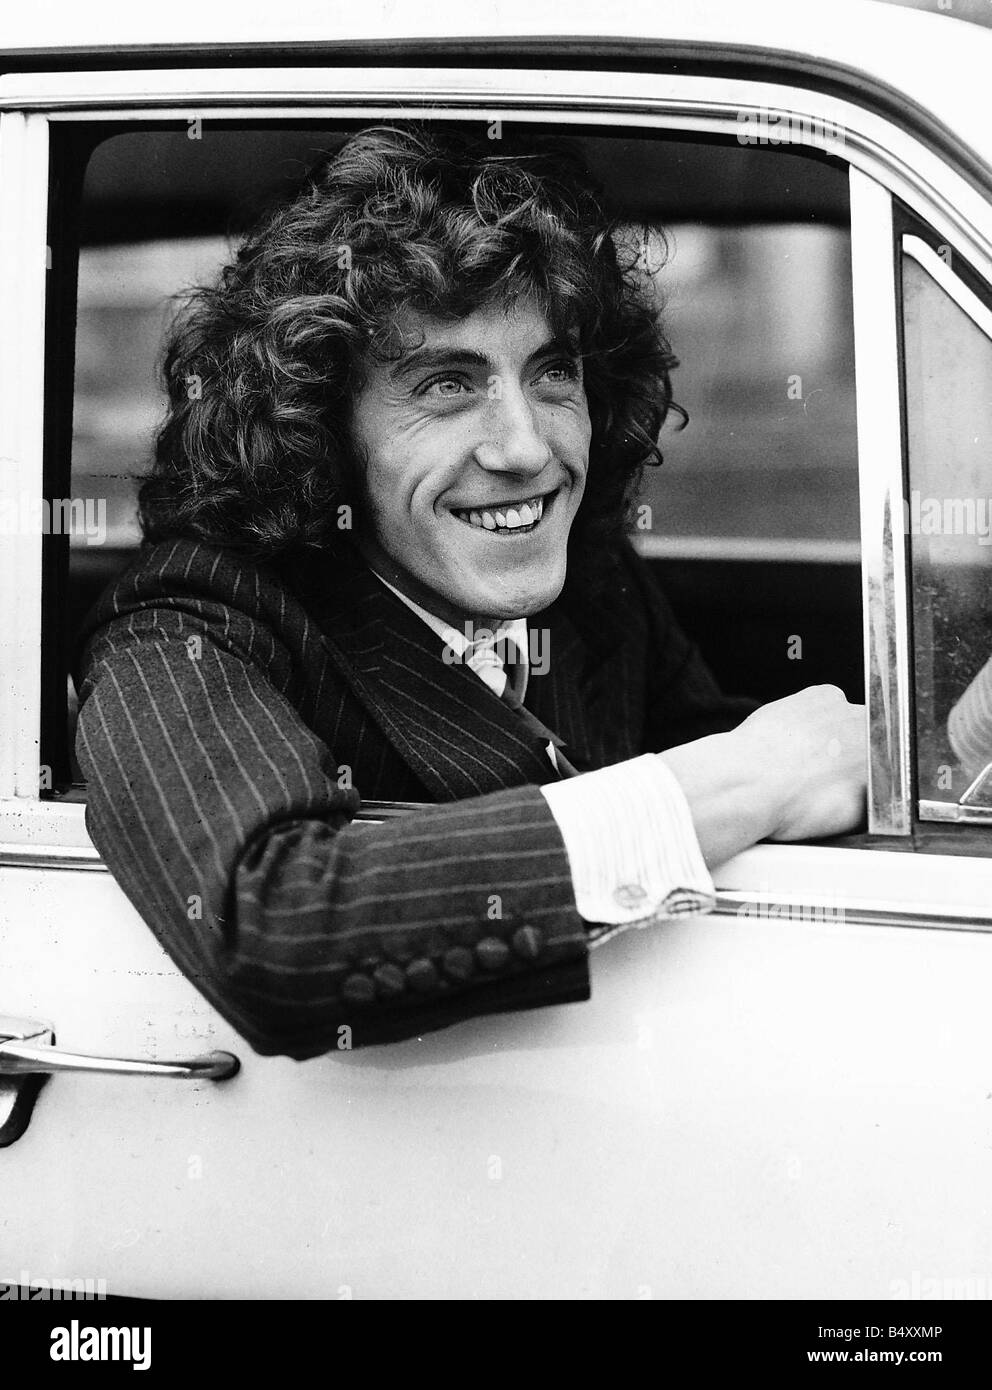 The Who pop group member Roger Daltrey sitting in car - Stock Image